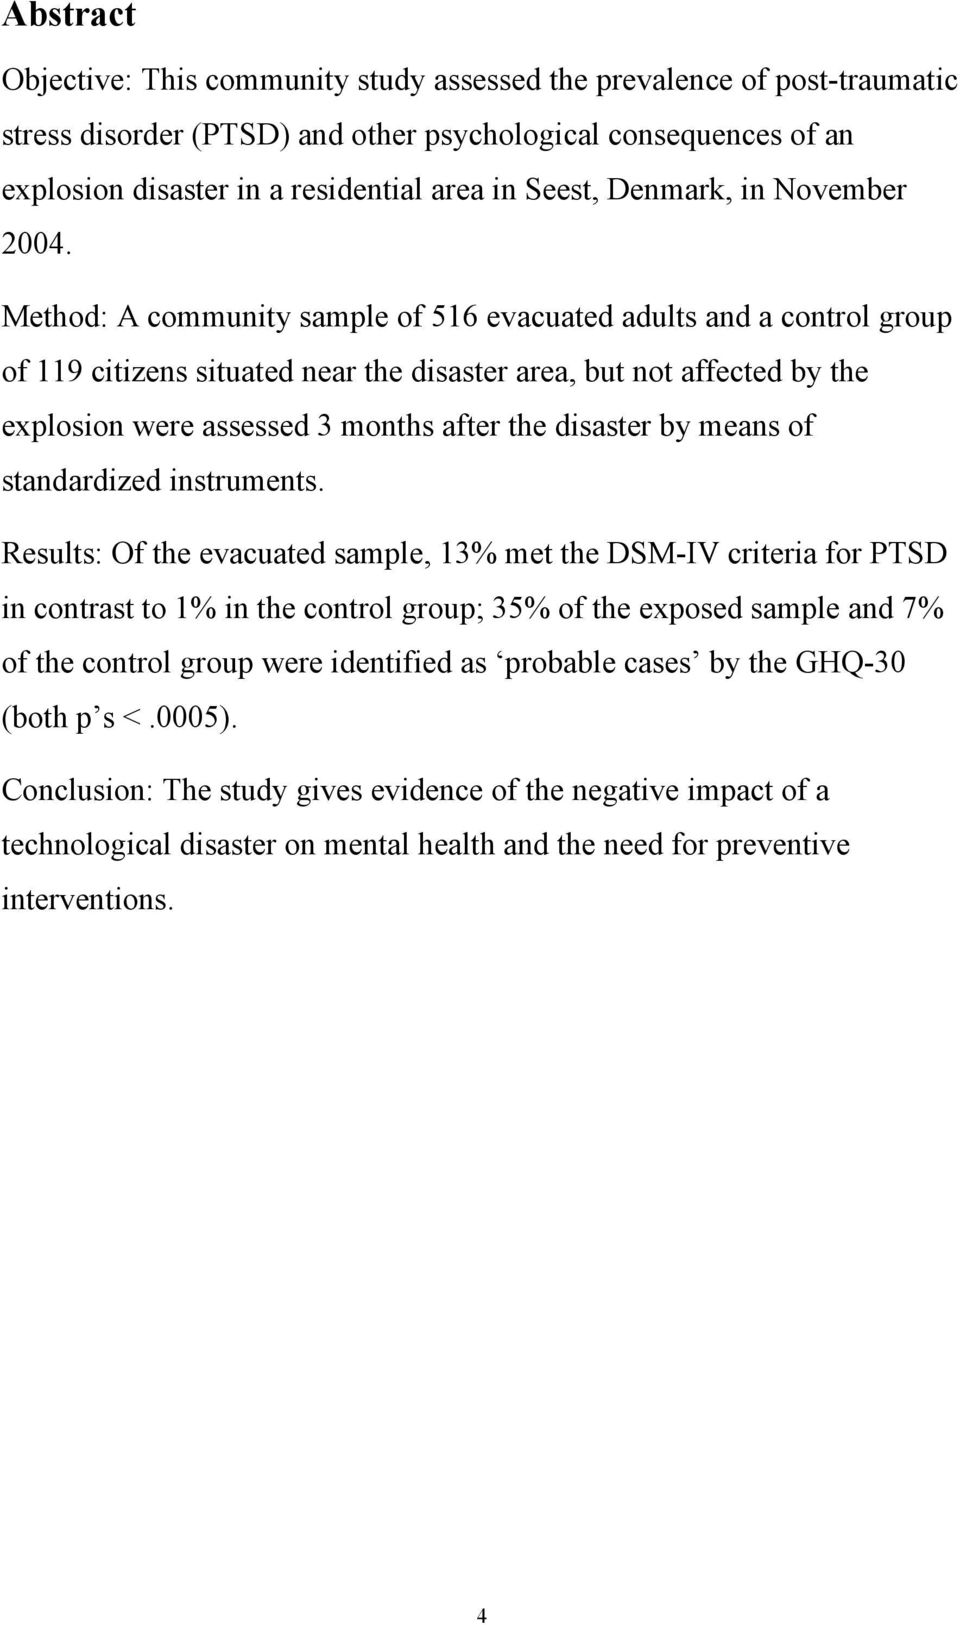 Method: A community sample of 516 evacuated adults and a control group of 119 citizens situated near the disaster area, but not affected by the explosion were assessed 3 months after the disaster by